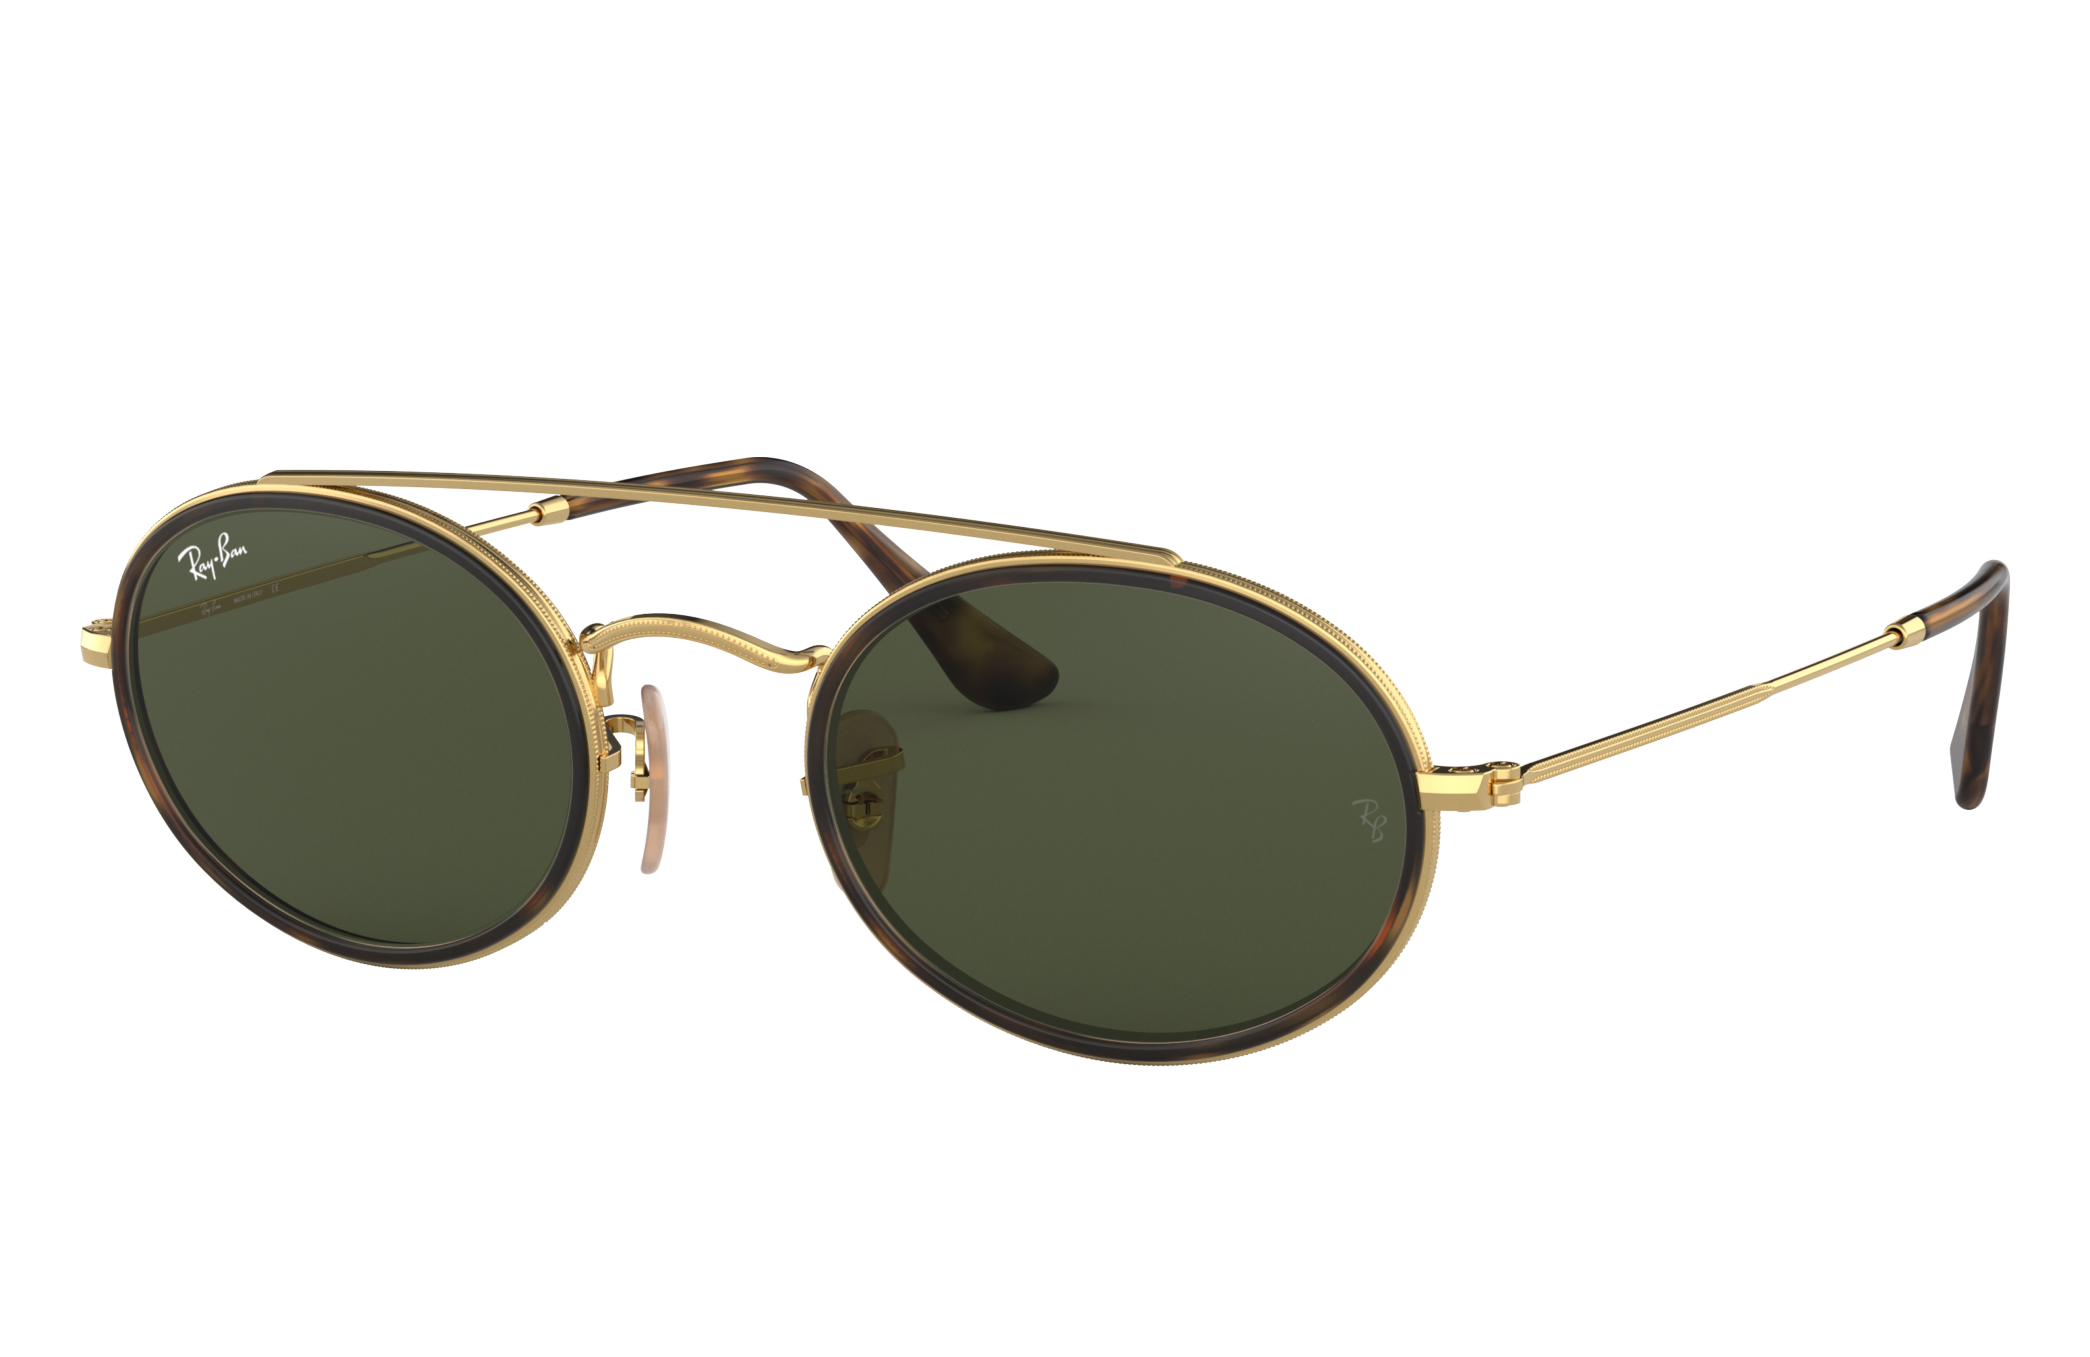 Ray-Ban Oval Double Bridge Gold, Green Lenses - RB3847N